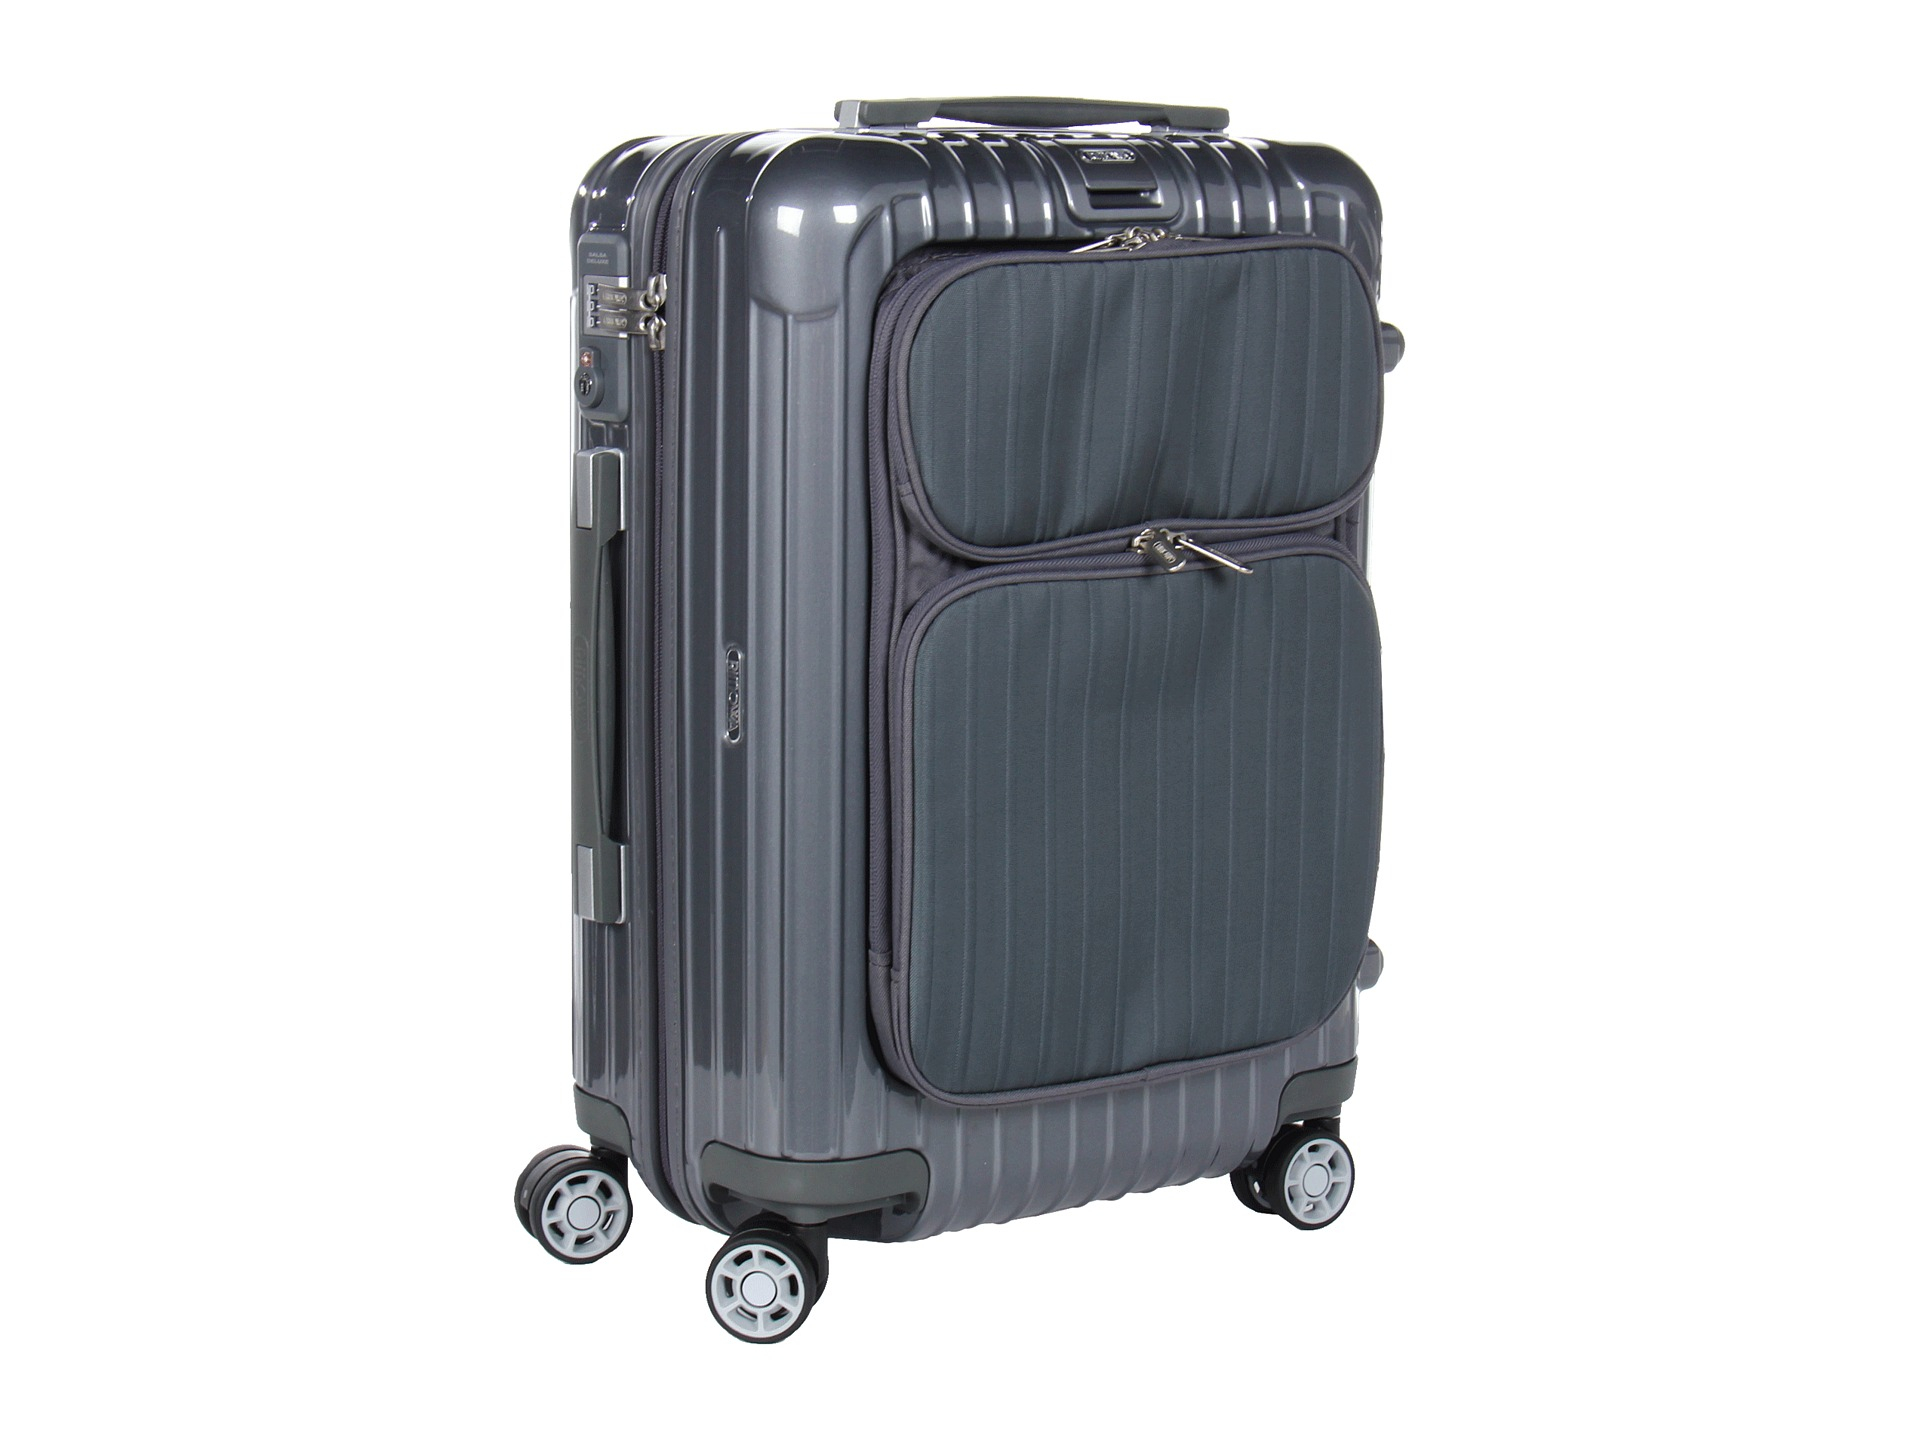 rimowa salsa deluxe hybrid 21 cabin multiwheel iata in gray lyst. Black Bedroom Furniture Sets. Home Design Ideas